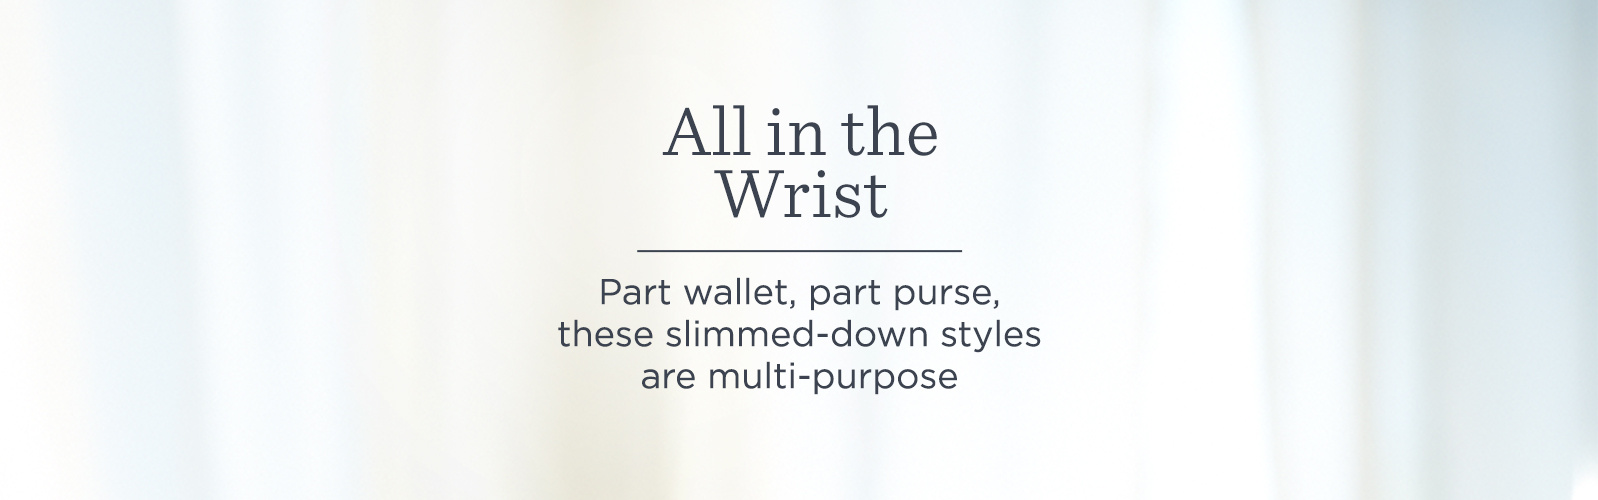 All in the Wrist. Part wallet, part purse, these slimmed-down styles are multi-purpose